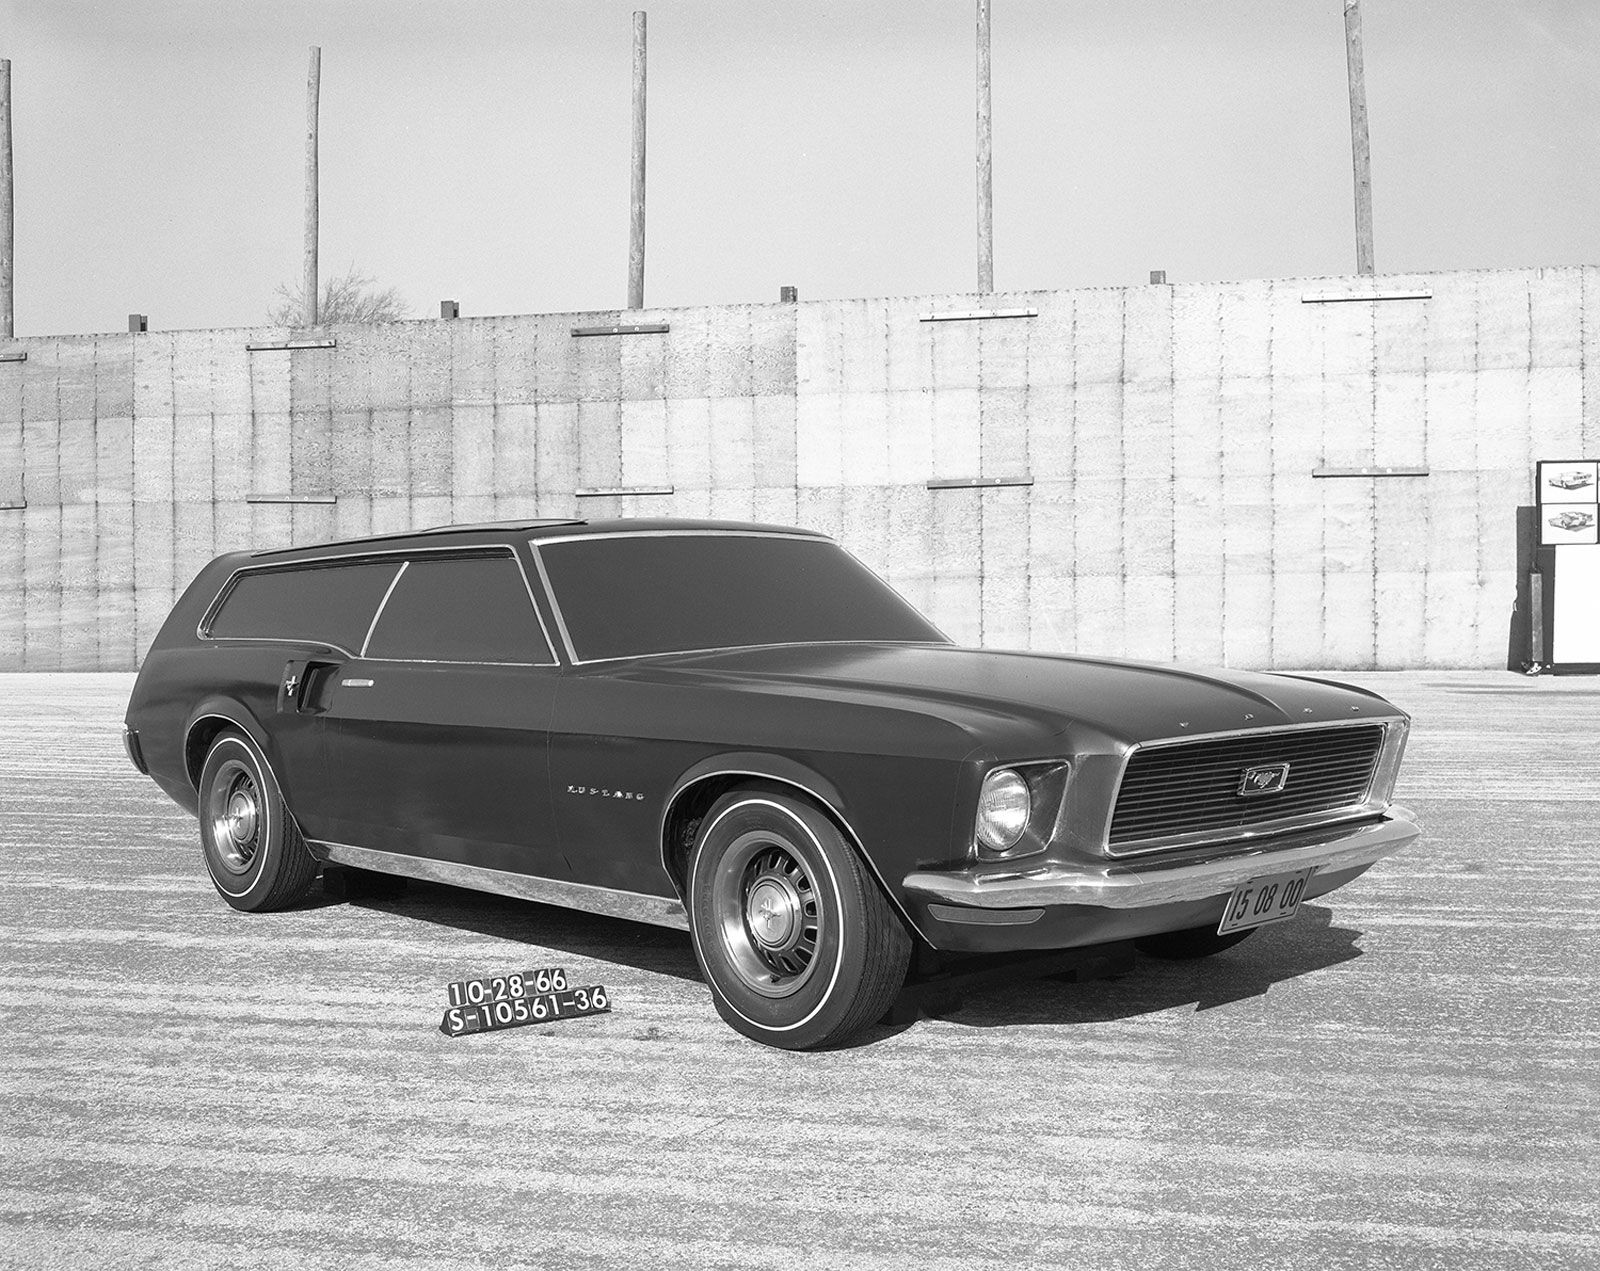 1966 Ford Mustang Shooting Star Prototype Concept Cars